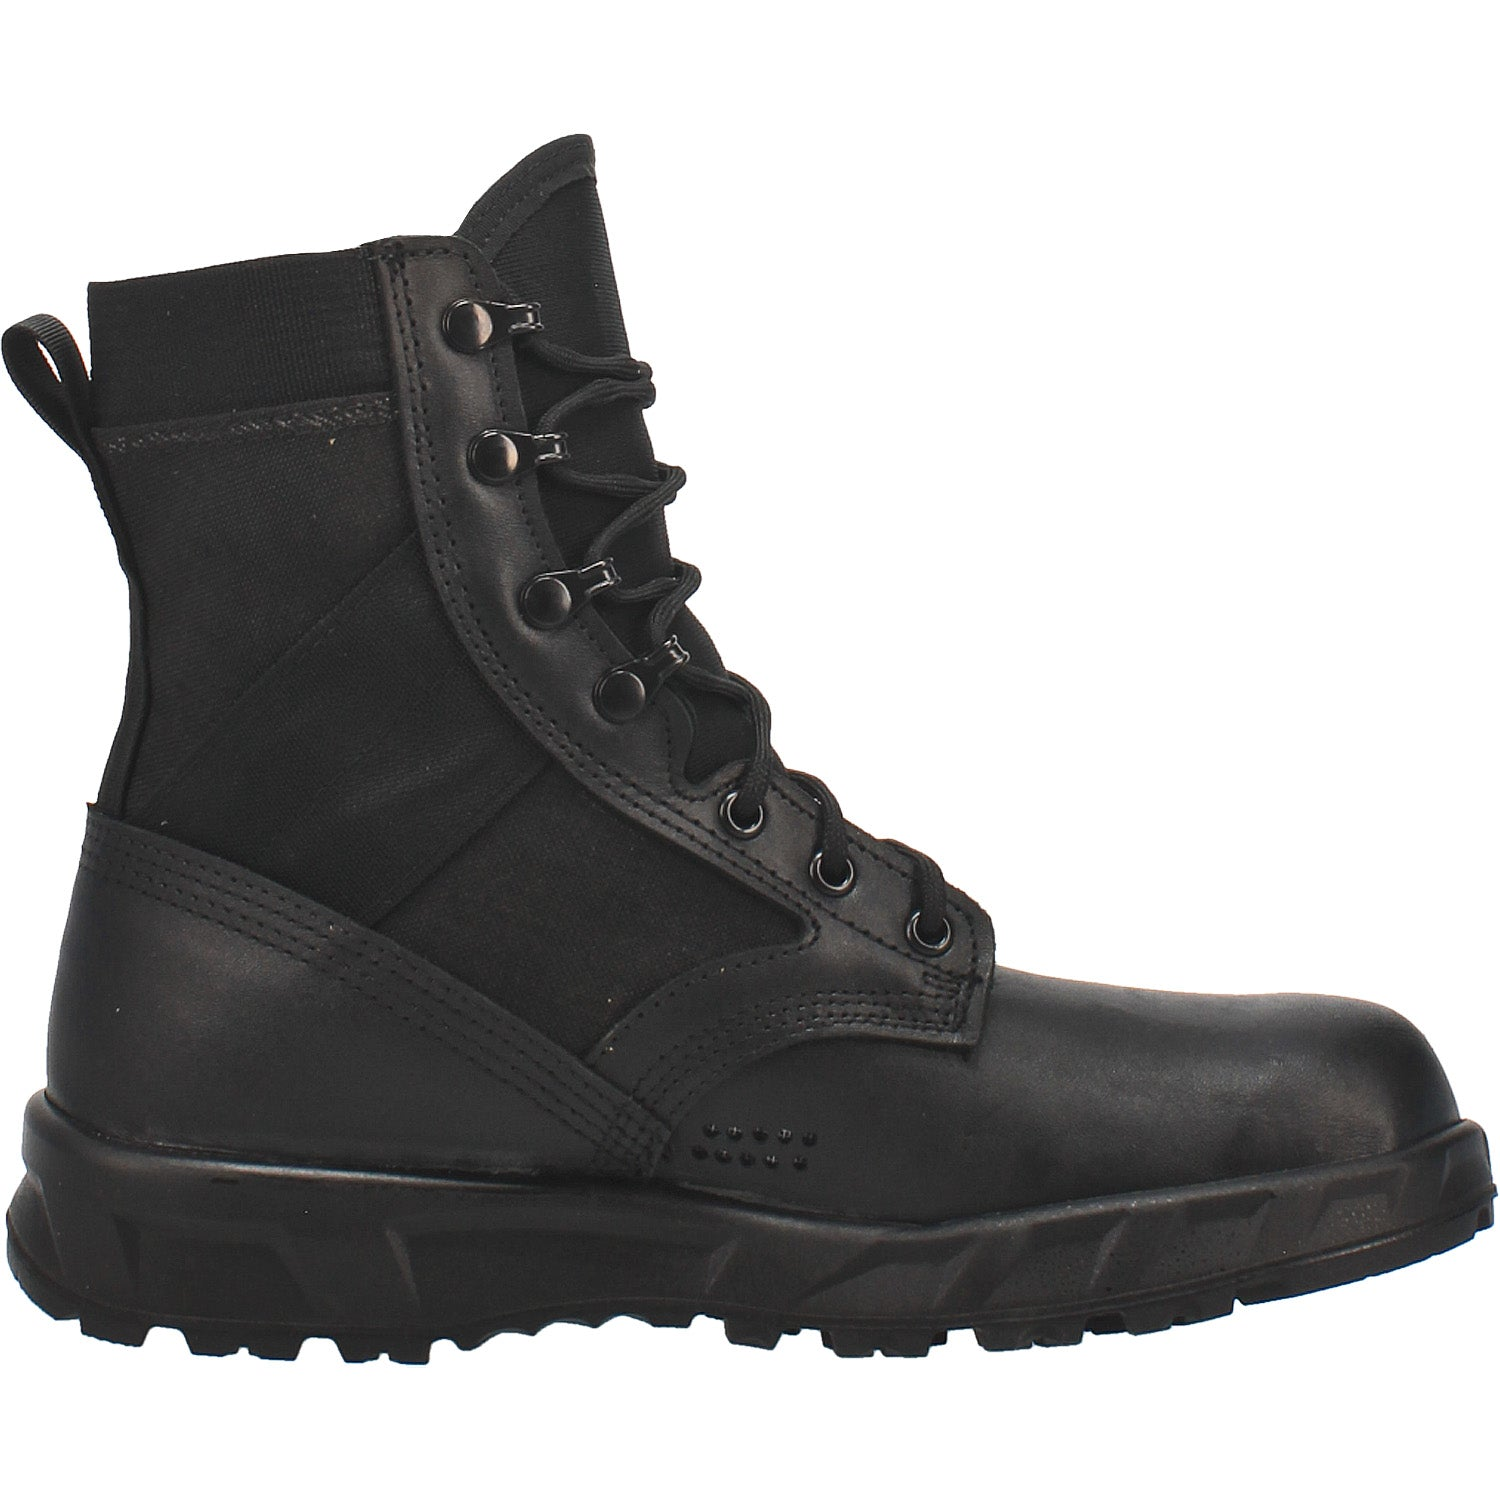 T2 Ultra Light Hot Weather Combat Boot 27986662916138